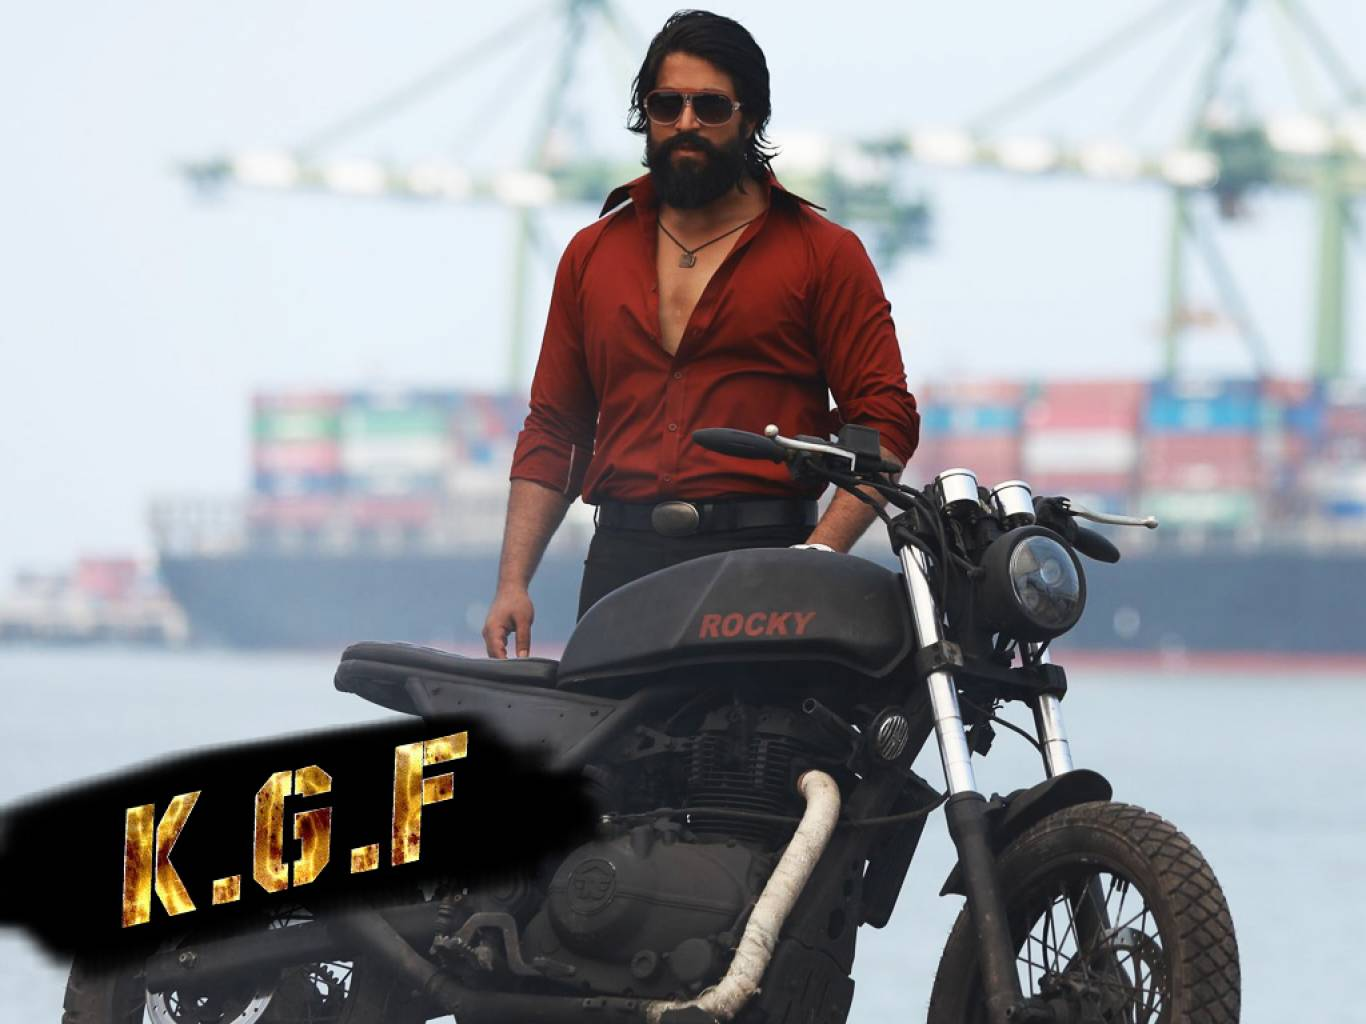 KGF Movie HD Wallpapers KGF HD Movie Wallpapers Download 1366x1024